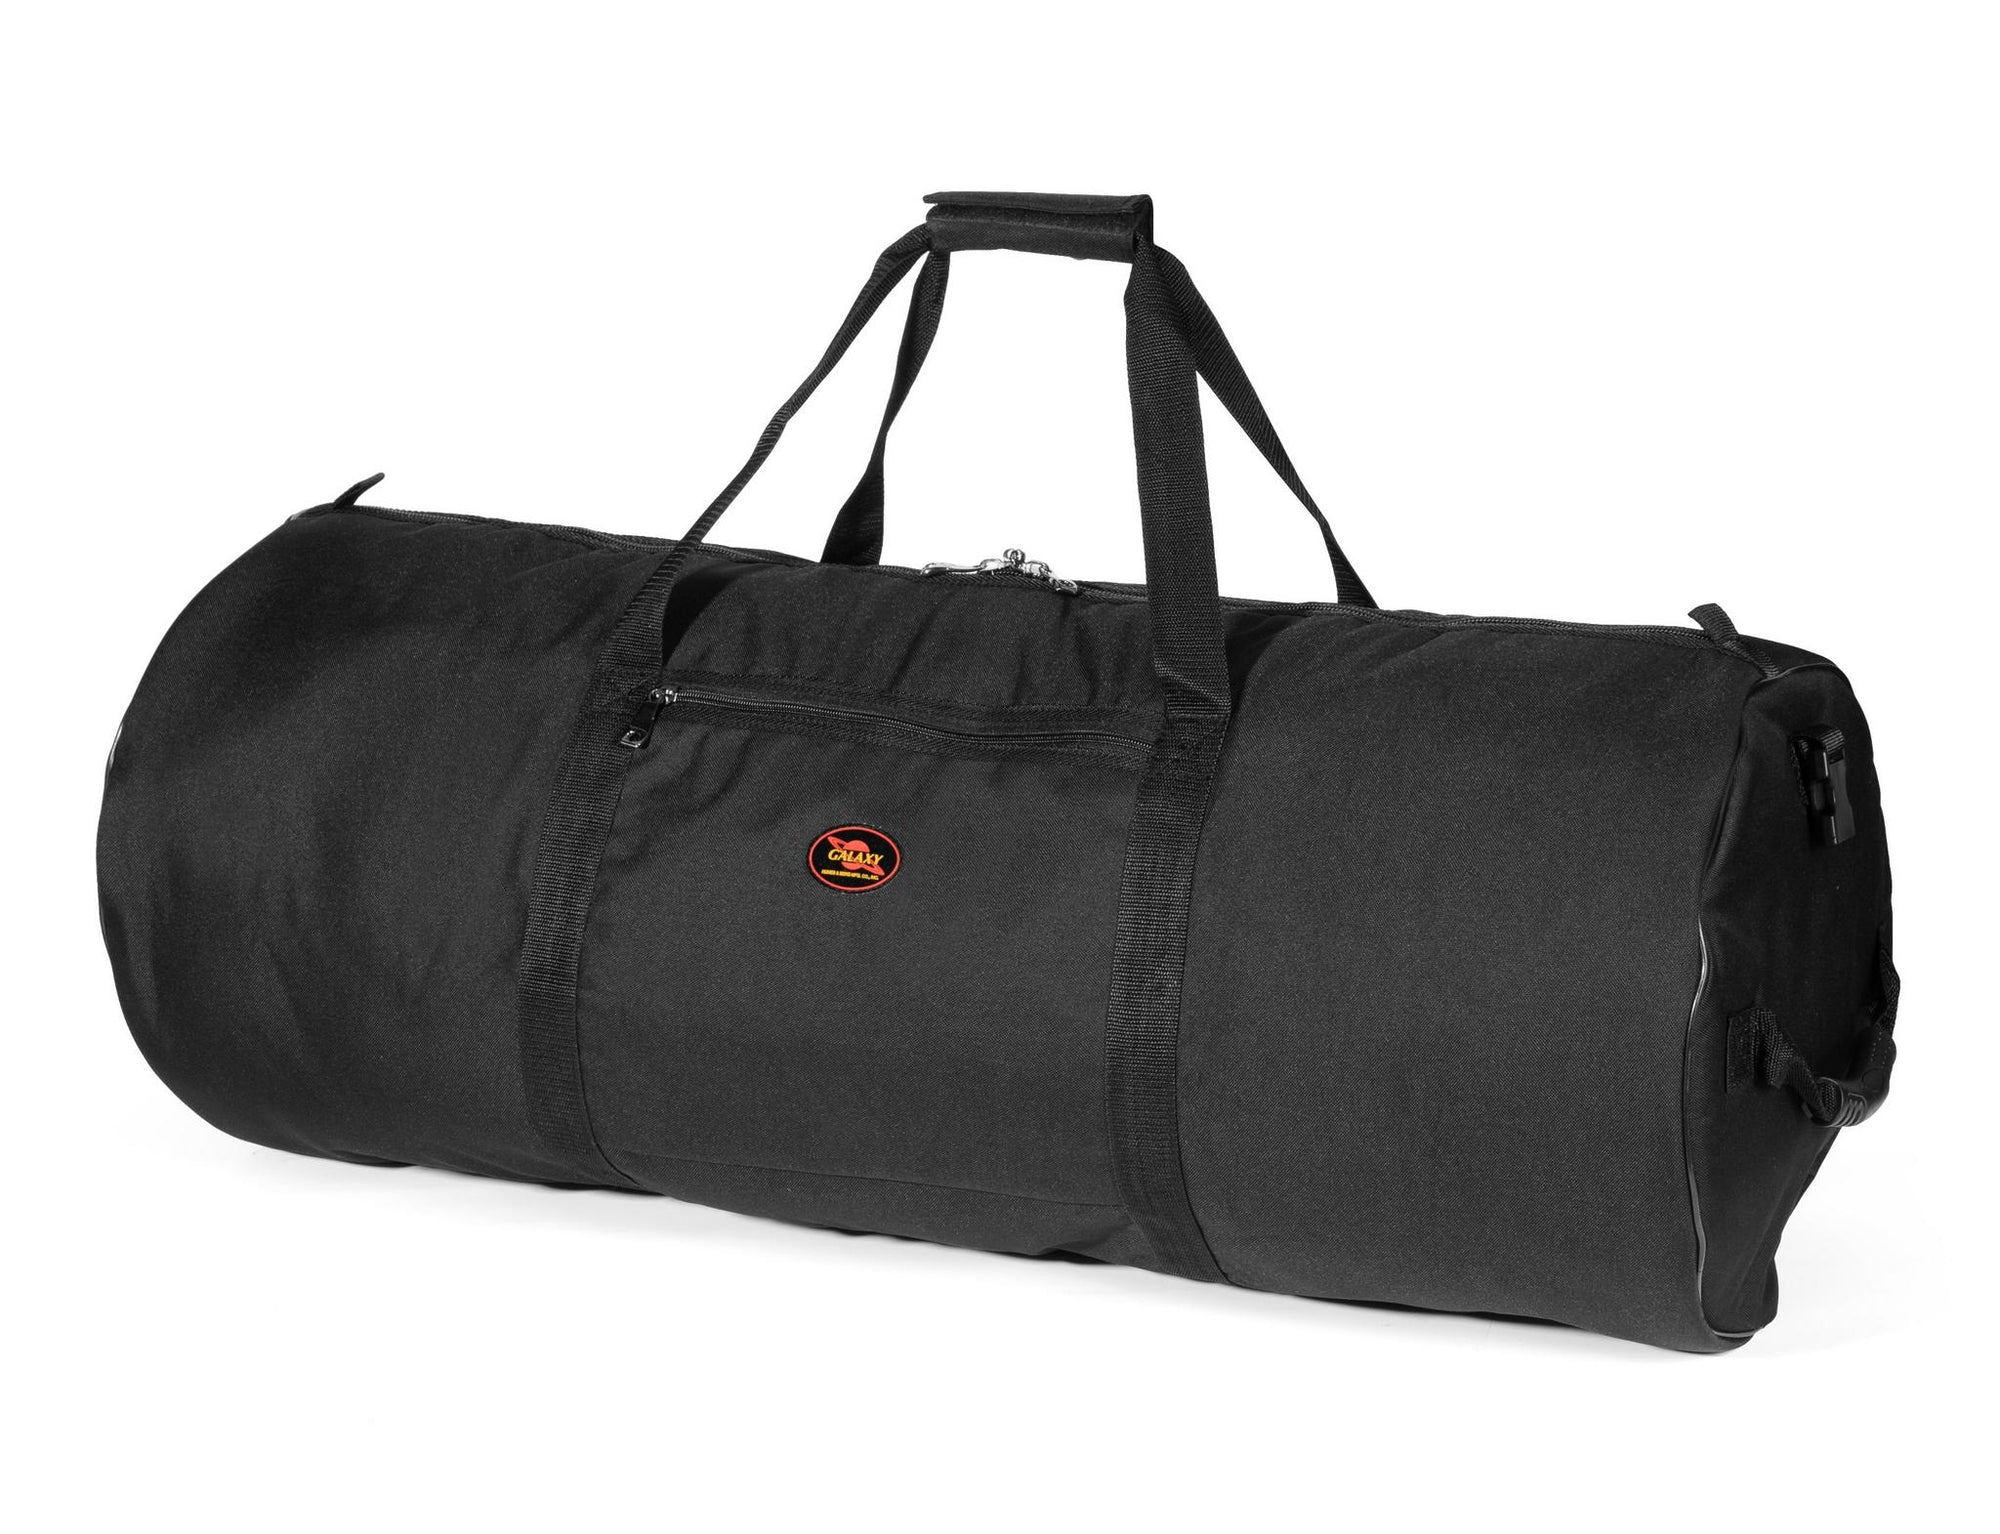 H&B  Galaxy 38 x 14.5 Inches Companion Bag